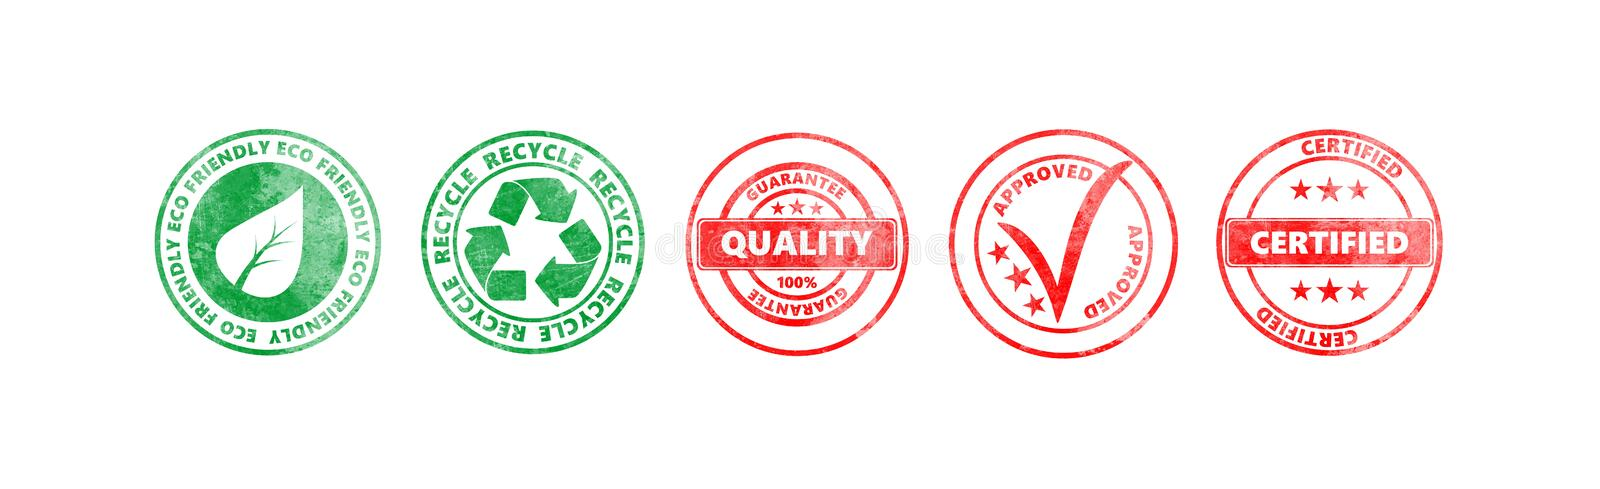 Red and green round stamps with text isolated on white background, banner royalty free illustration